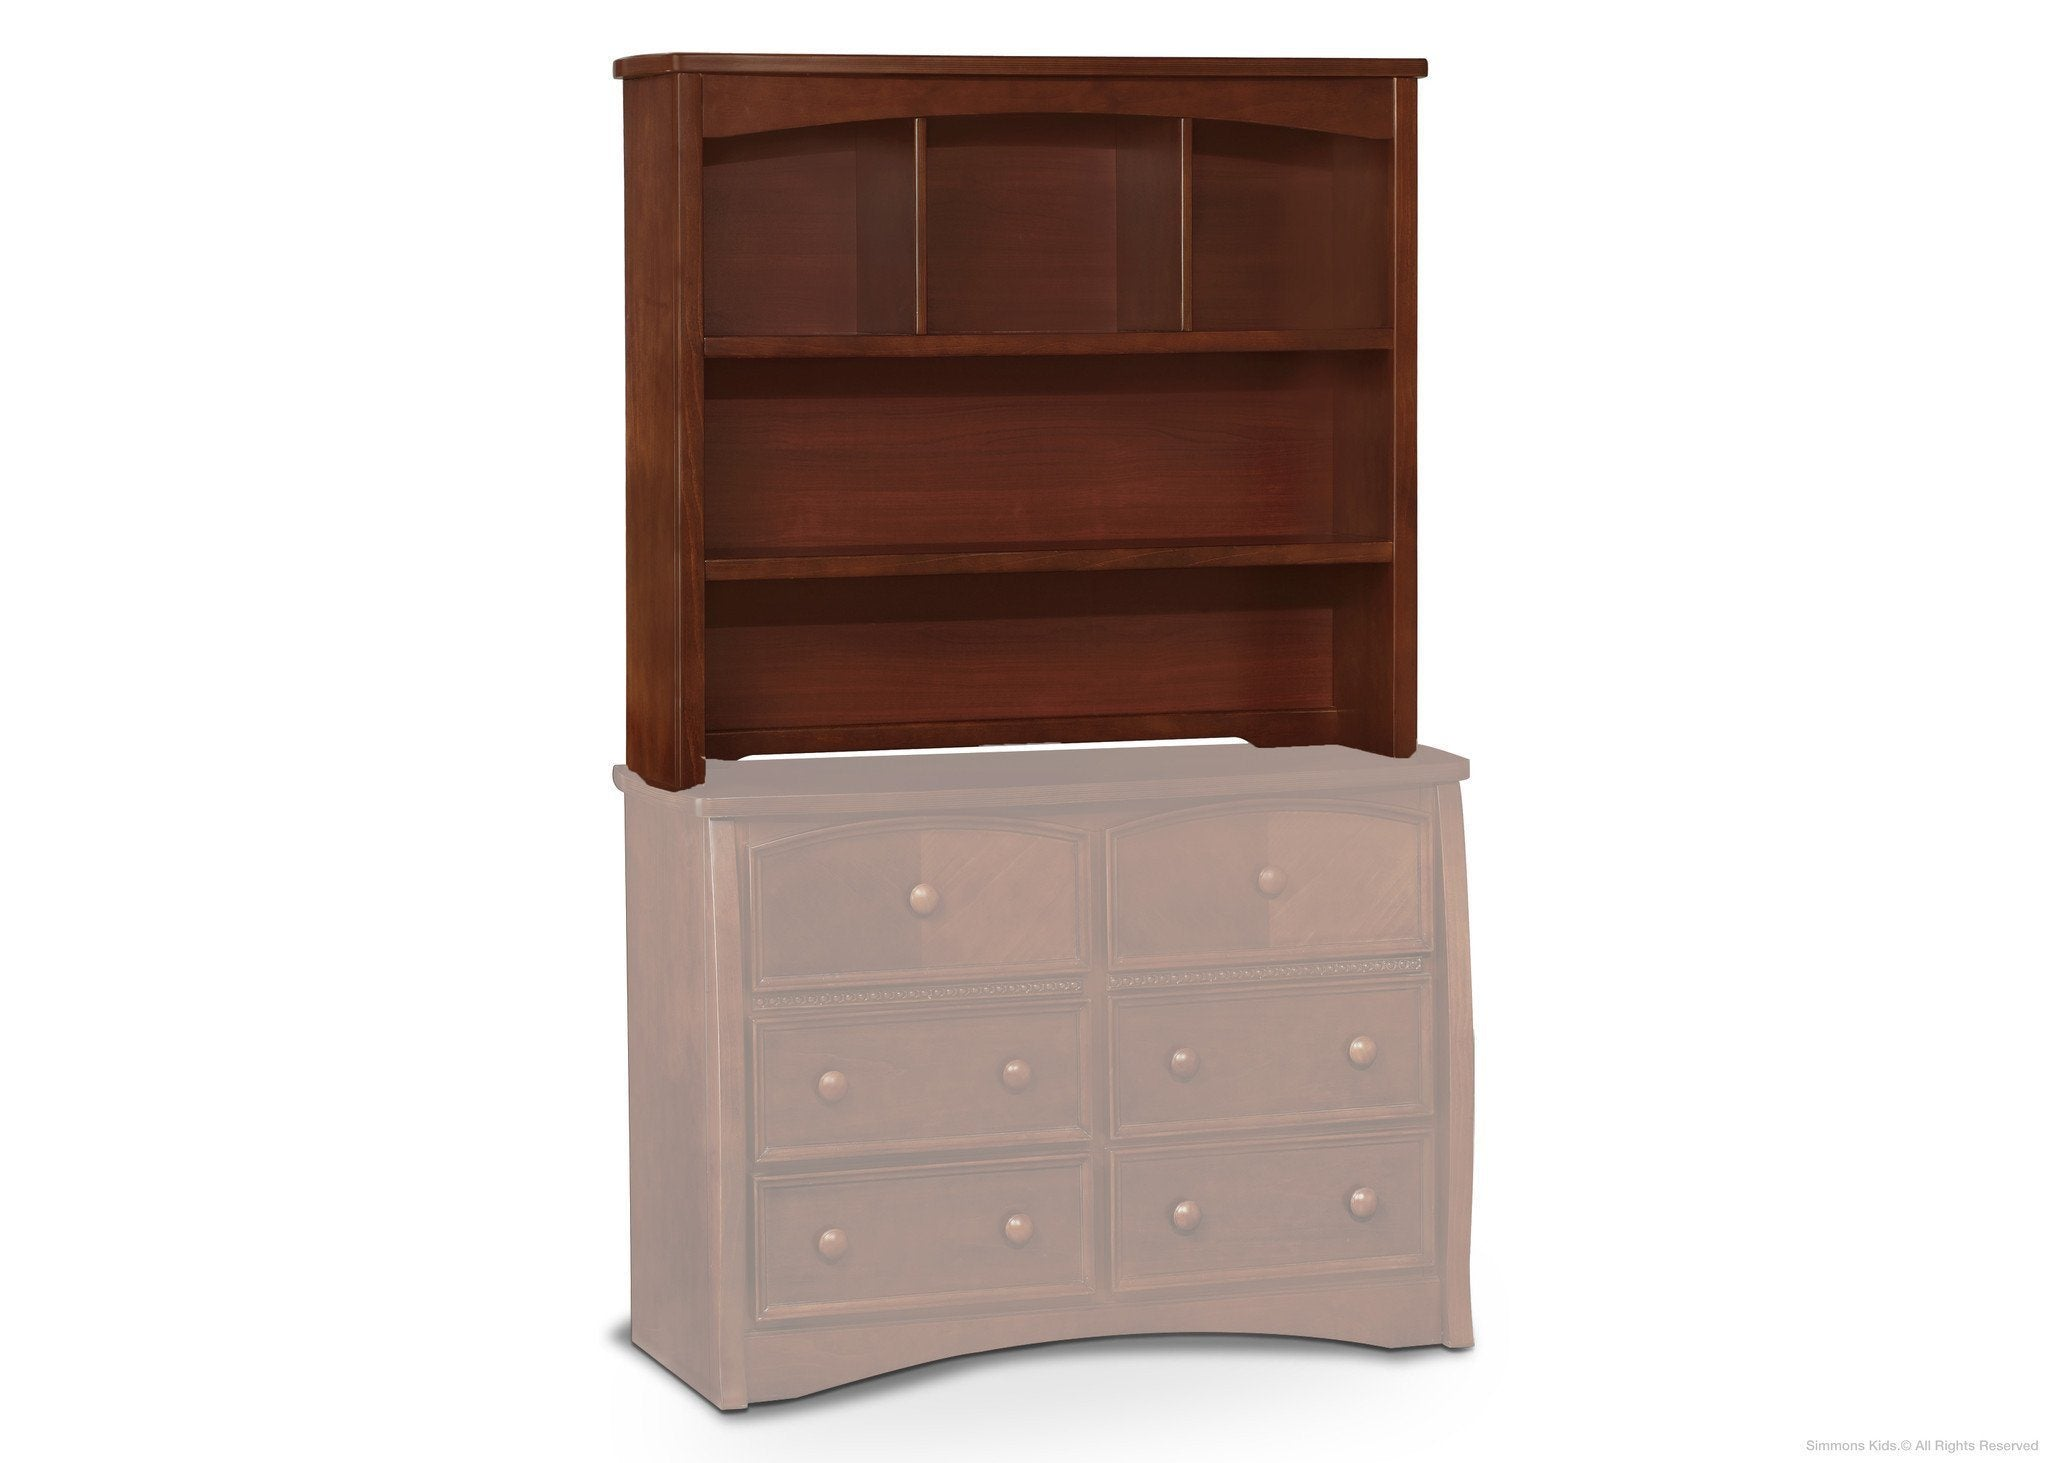 Simmons Kids Espresso Truffle (208) Elite 2-in-1 Hutch/Bookcase, Atop Elite Double Dresser 2 a5a